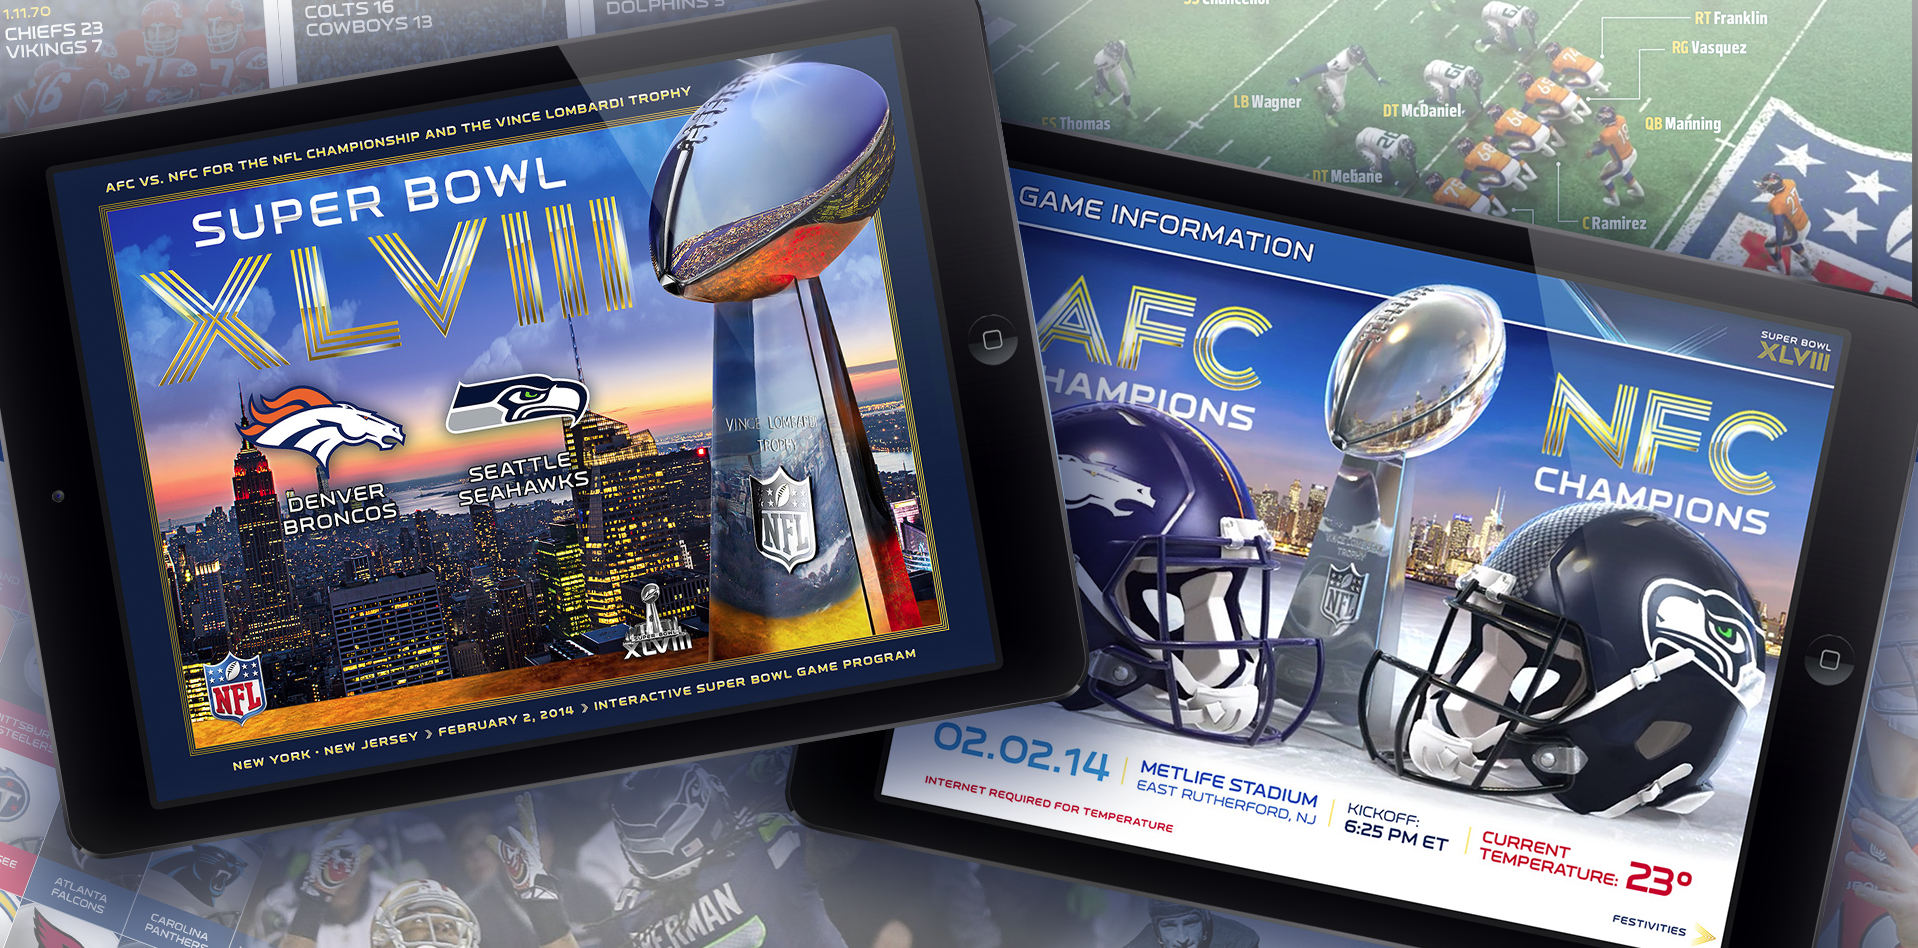 superbowl_2ipads.png